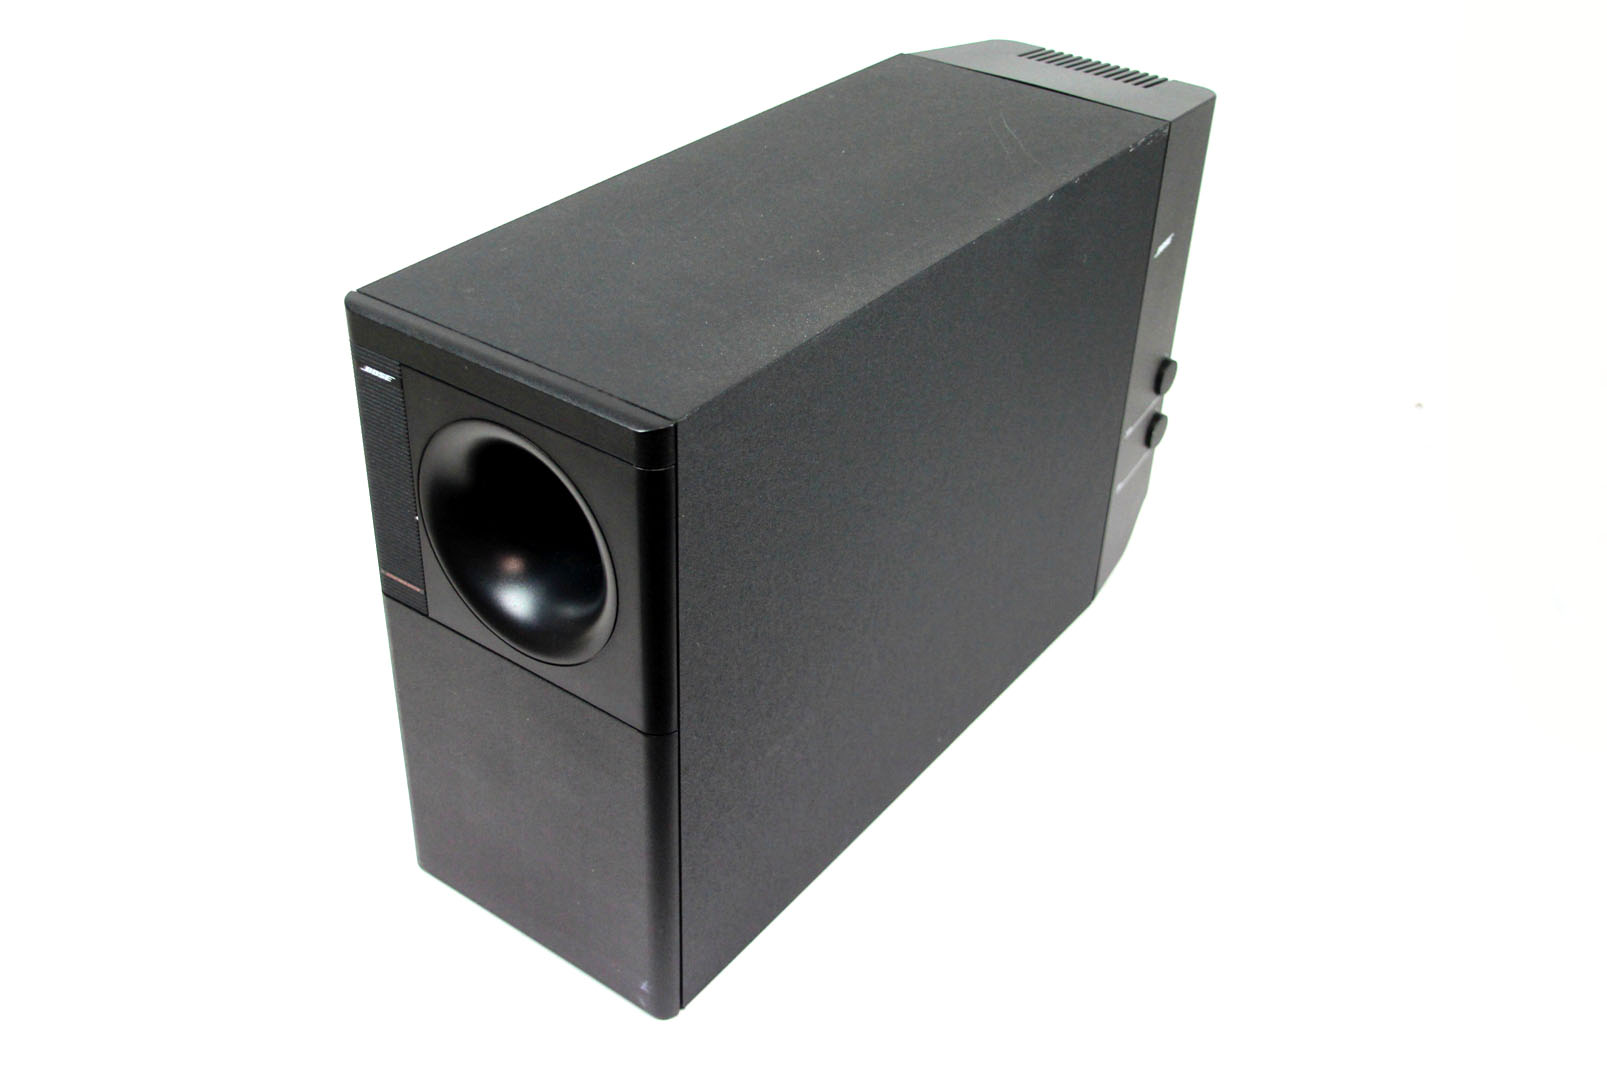 bose aktiv subwoofer bassbox lautsprecher powered. Black Bedroom Furniture Sets. Home Design Ideas